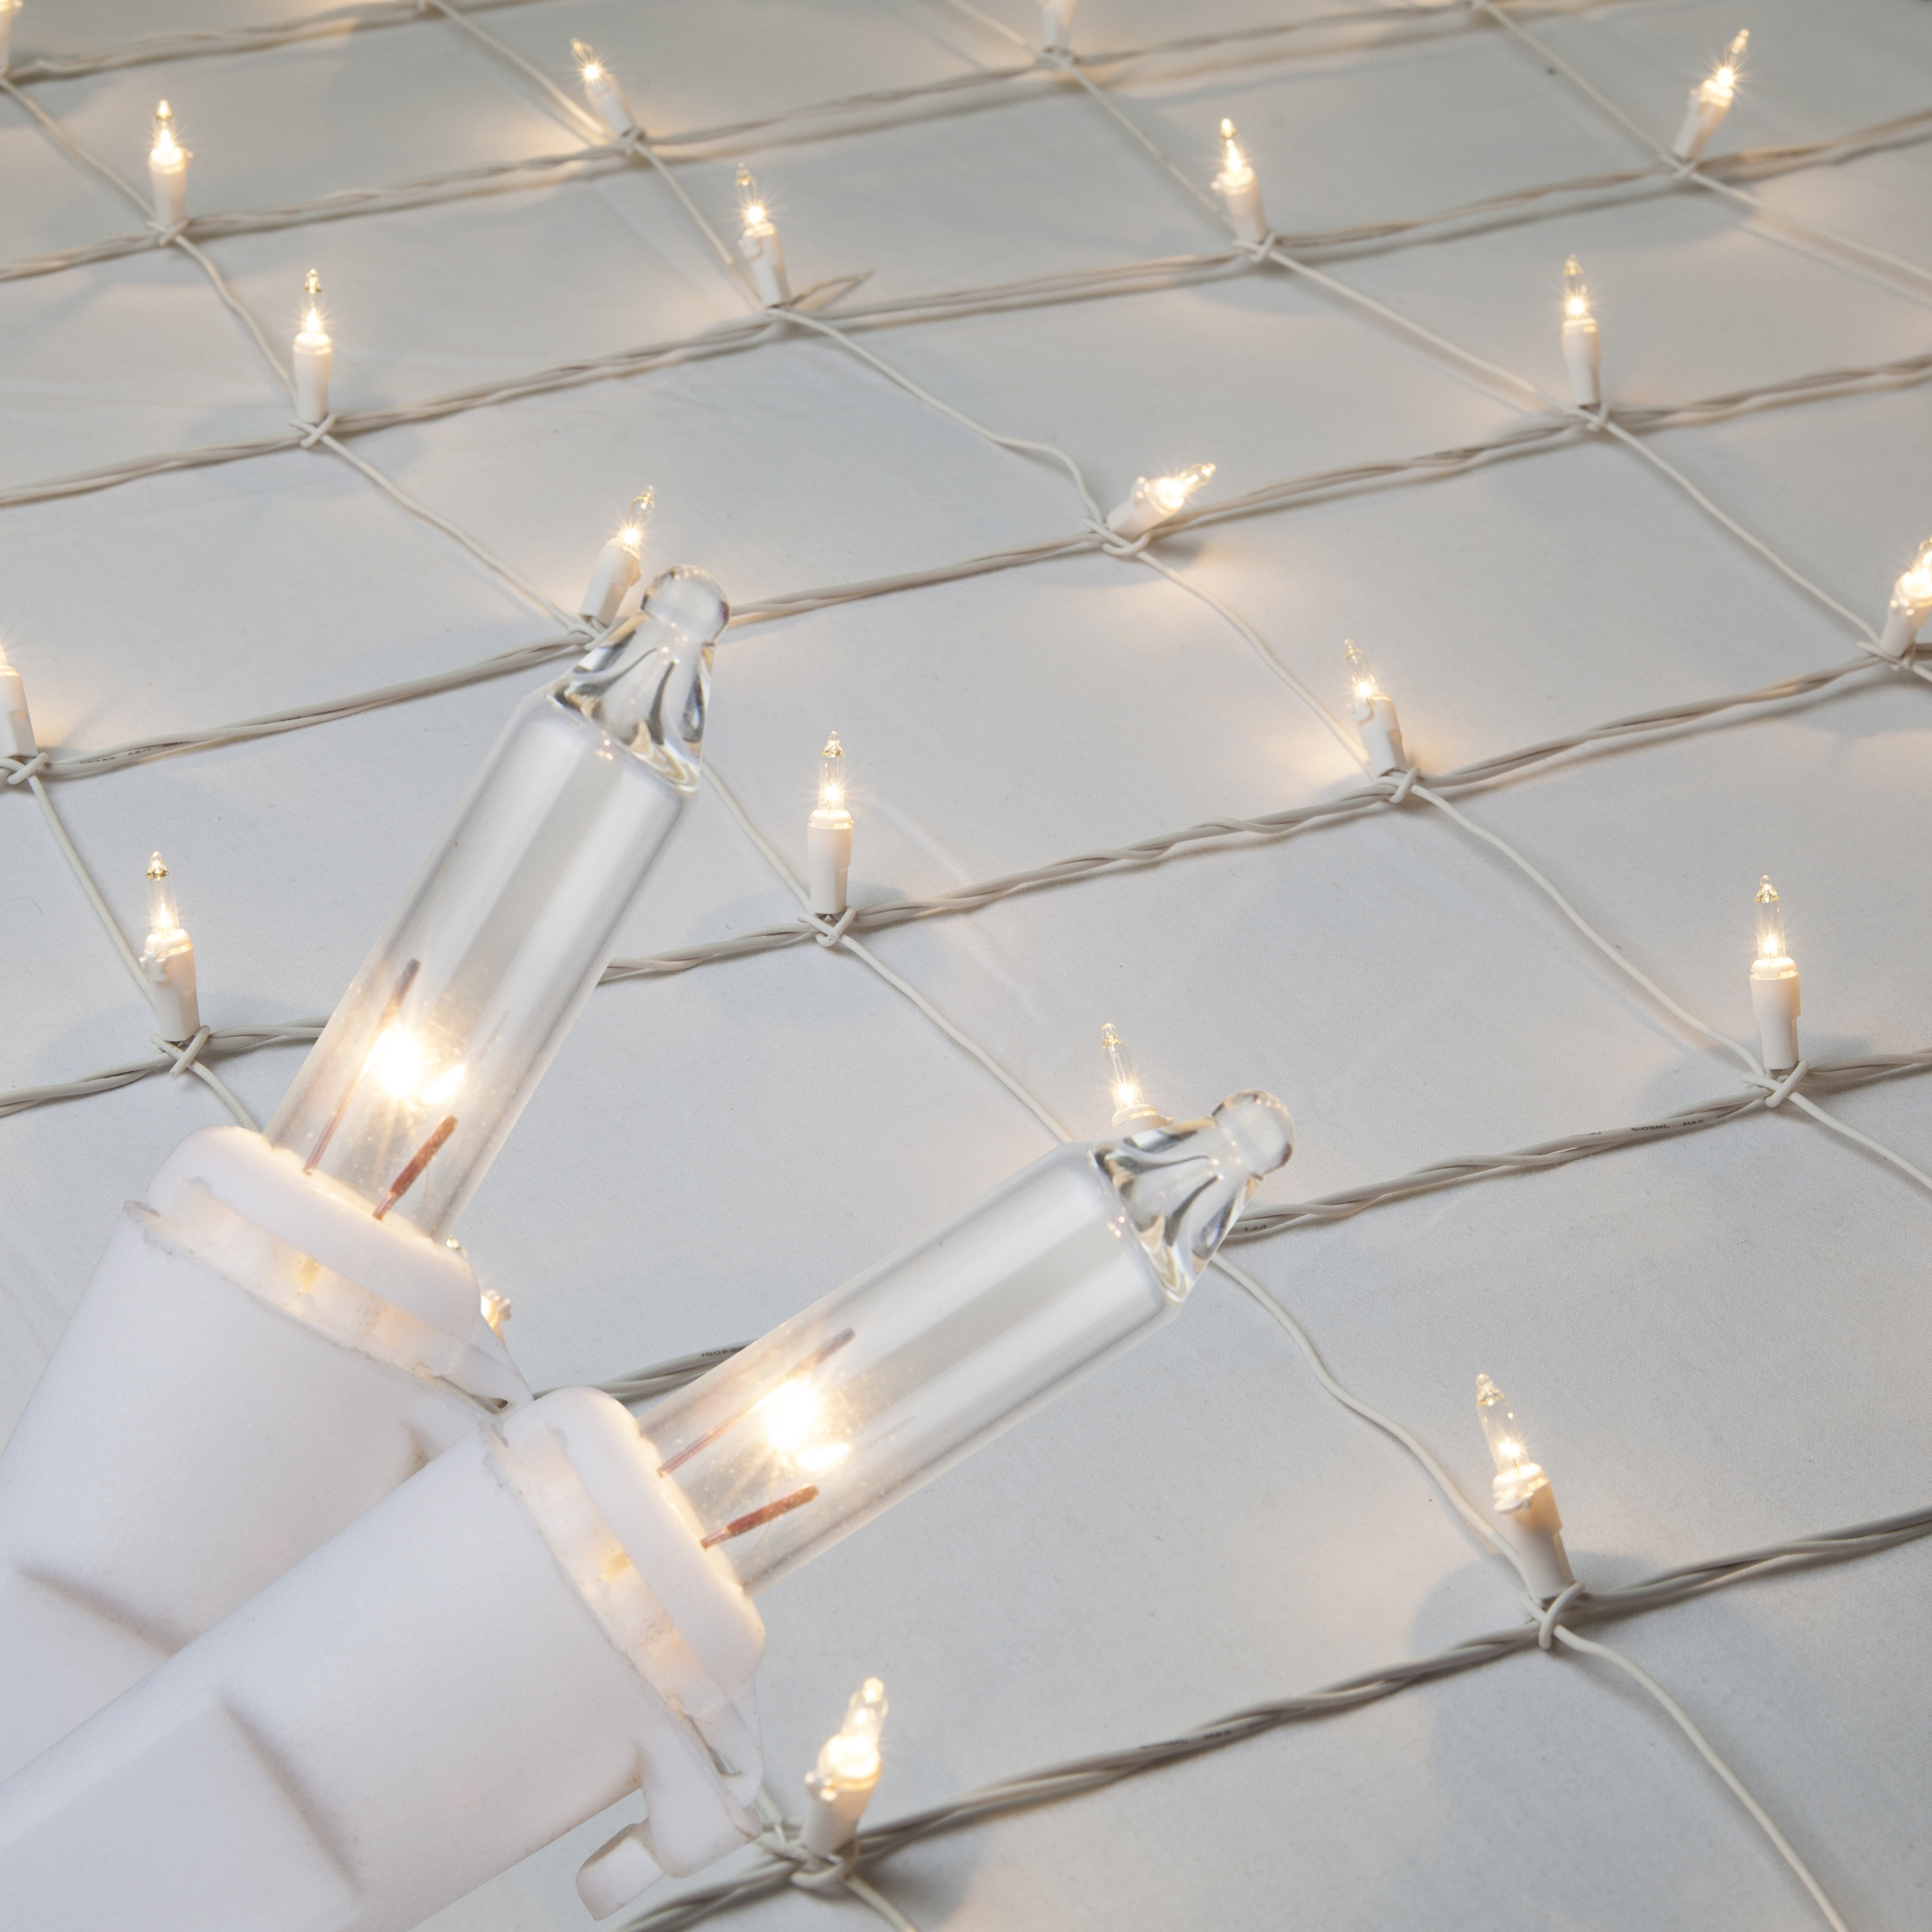 best sneakers 61f43 89031 4' x 6' Net Lights - 150 Clear Lamps - White Wire